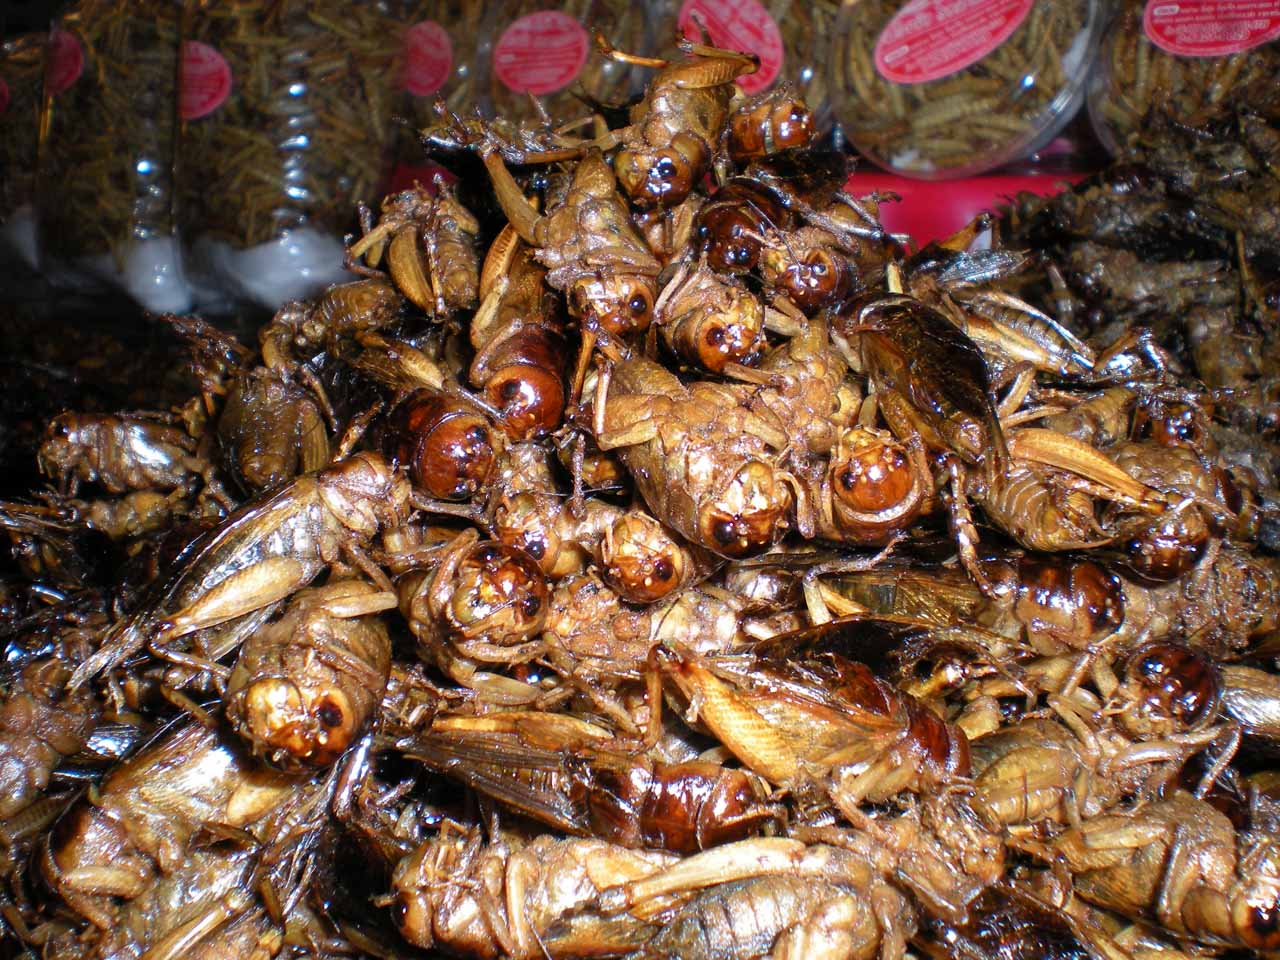 Grasshoppers as food